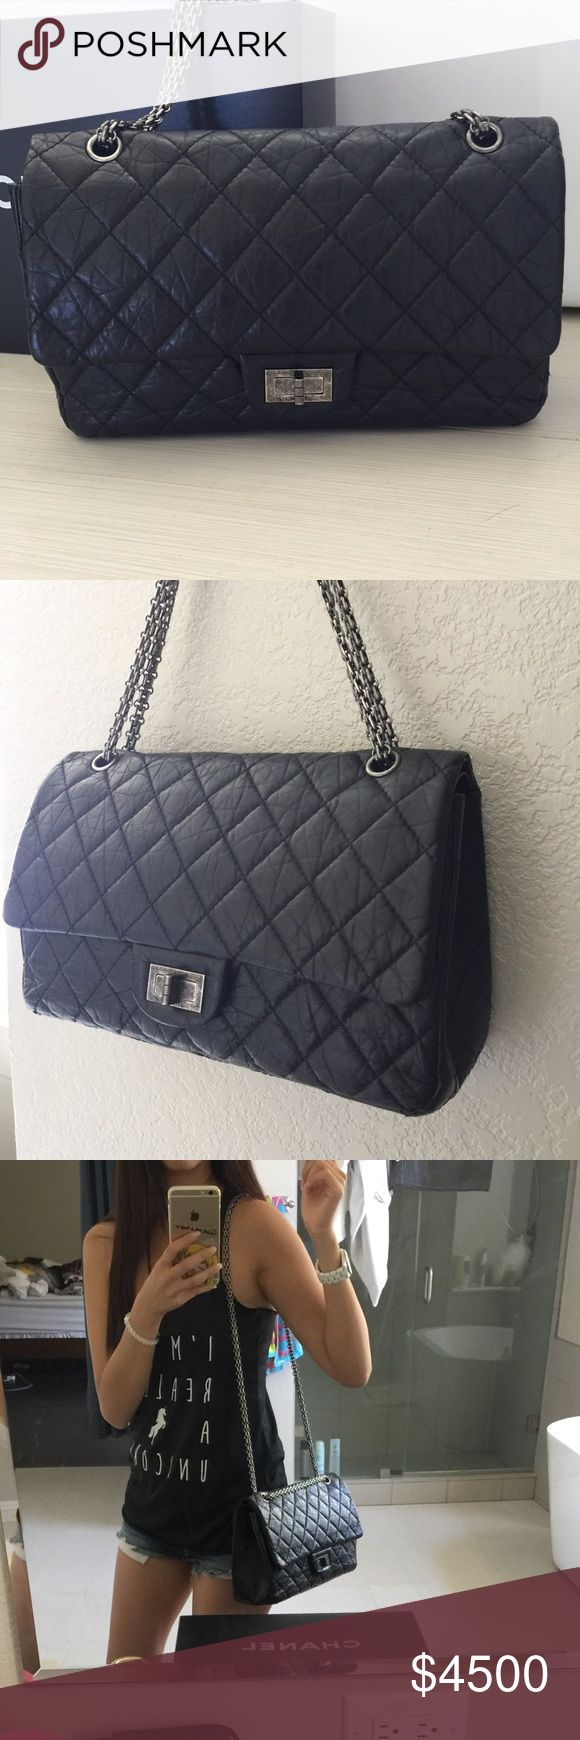 Chanel reissue 227 In perfect condition~ no corner wear or scuff marks. Full set with authentic card, care booklet, dust bag, and box. This is 14 series.. Serious inquires only. No trades Chanel Bags Shoulder Bags